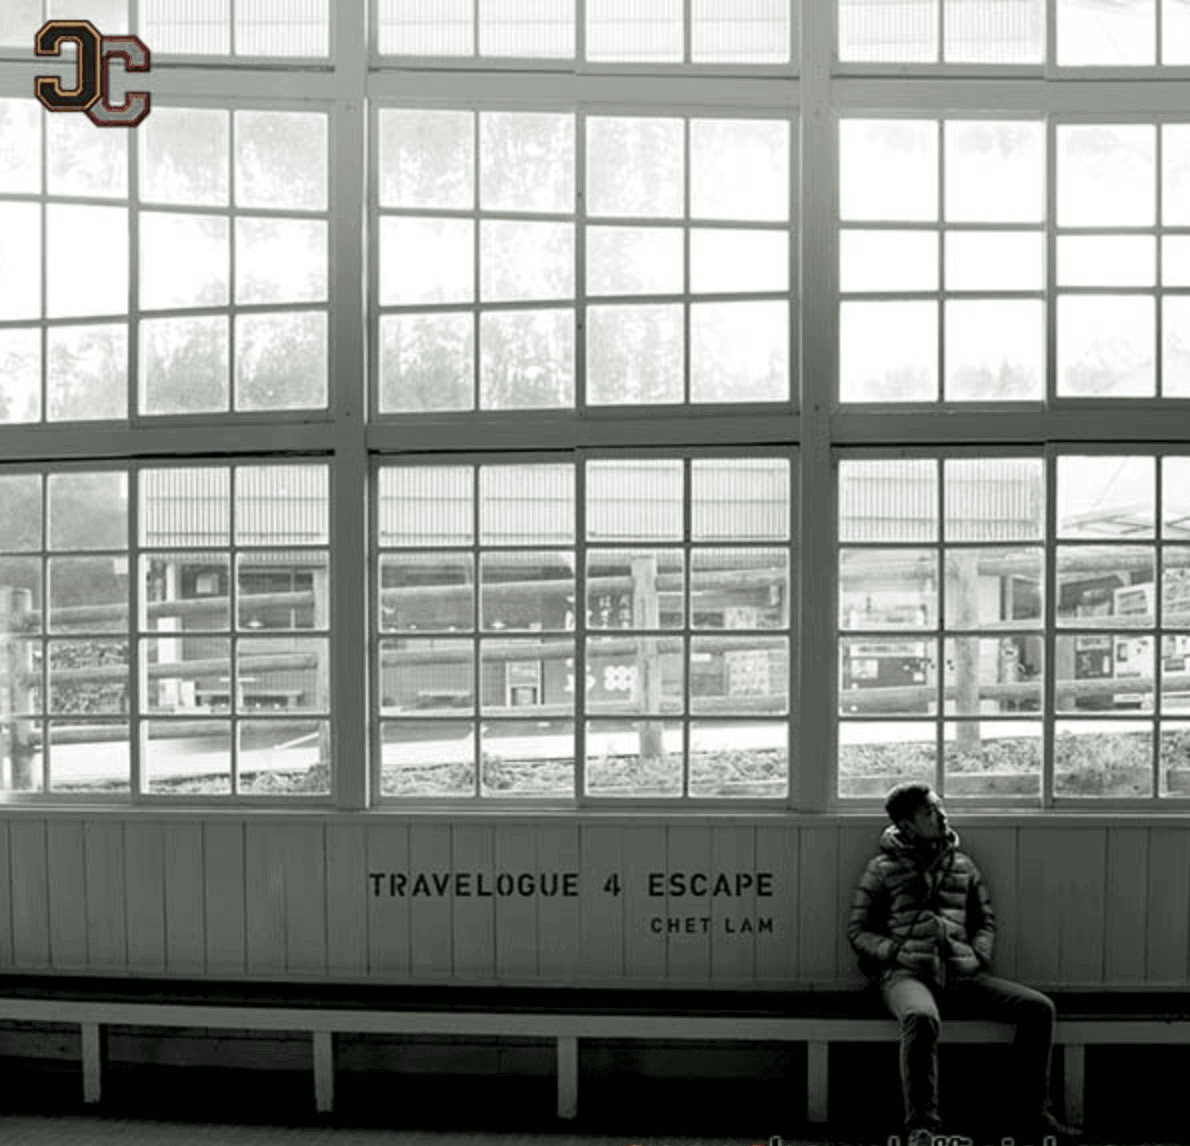 Chet Lam - Travelogue 4 Escape